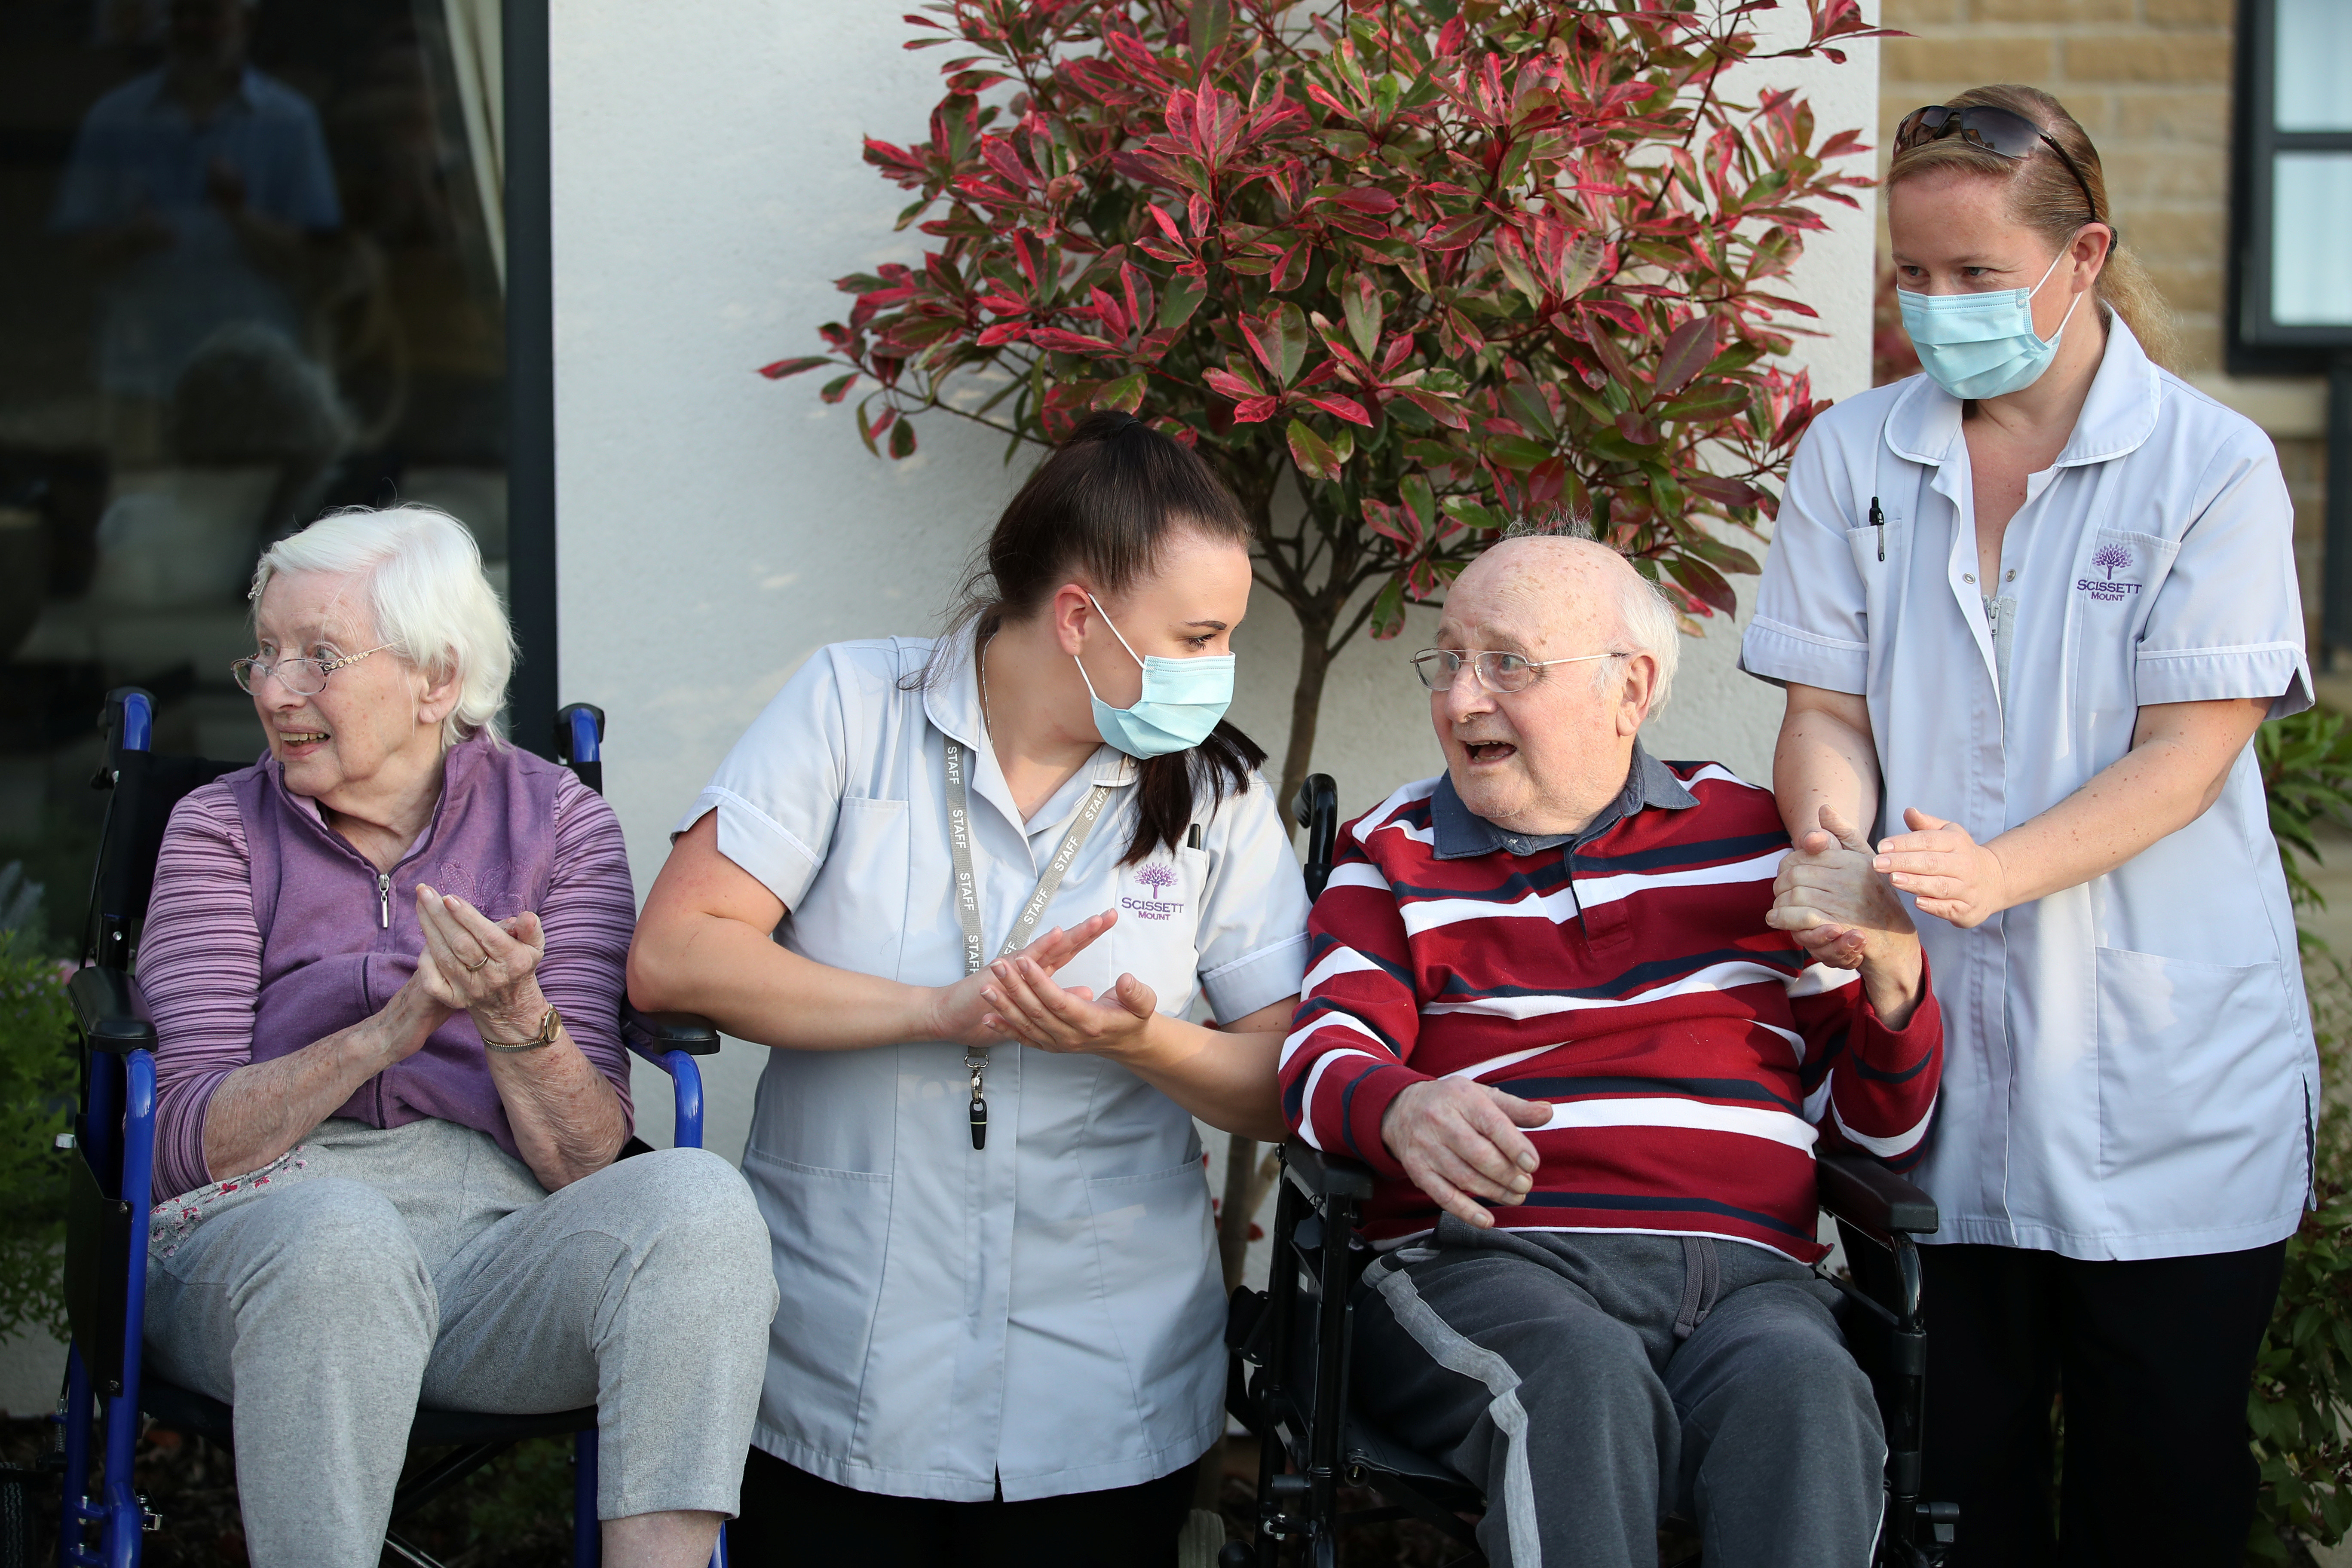 Care workers and residents of the Scisset Mount Care Home react during the last day of the Clap for our Carers campaign in support of the NHS, following the outbreak of the coronavirus disease (COVID-19), Huddersfield, Britain, May 28, 2020.